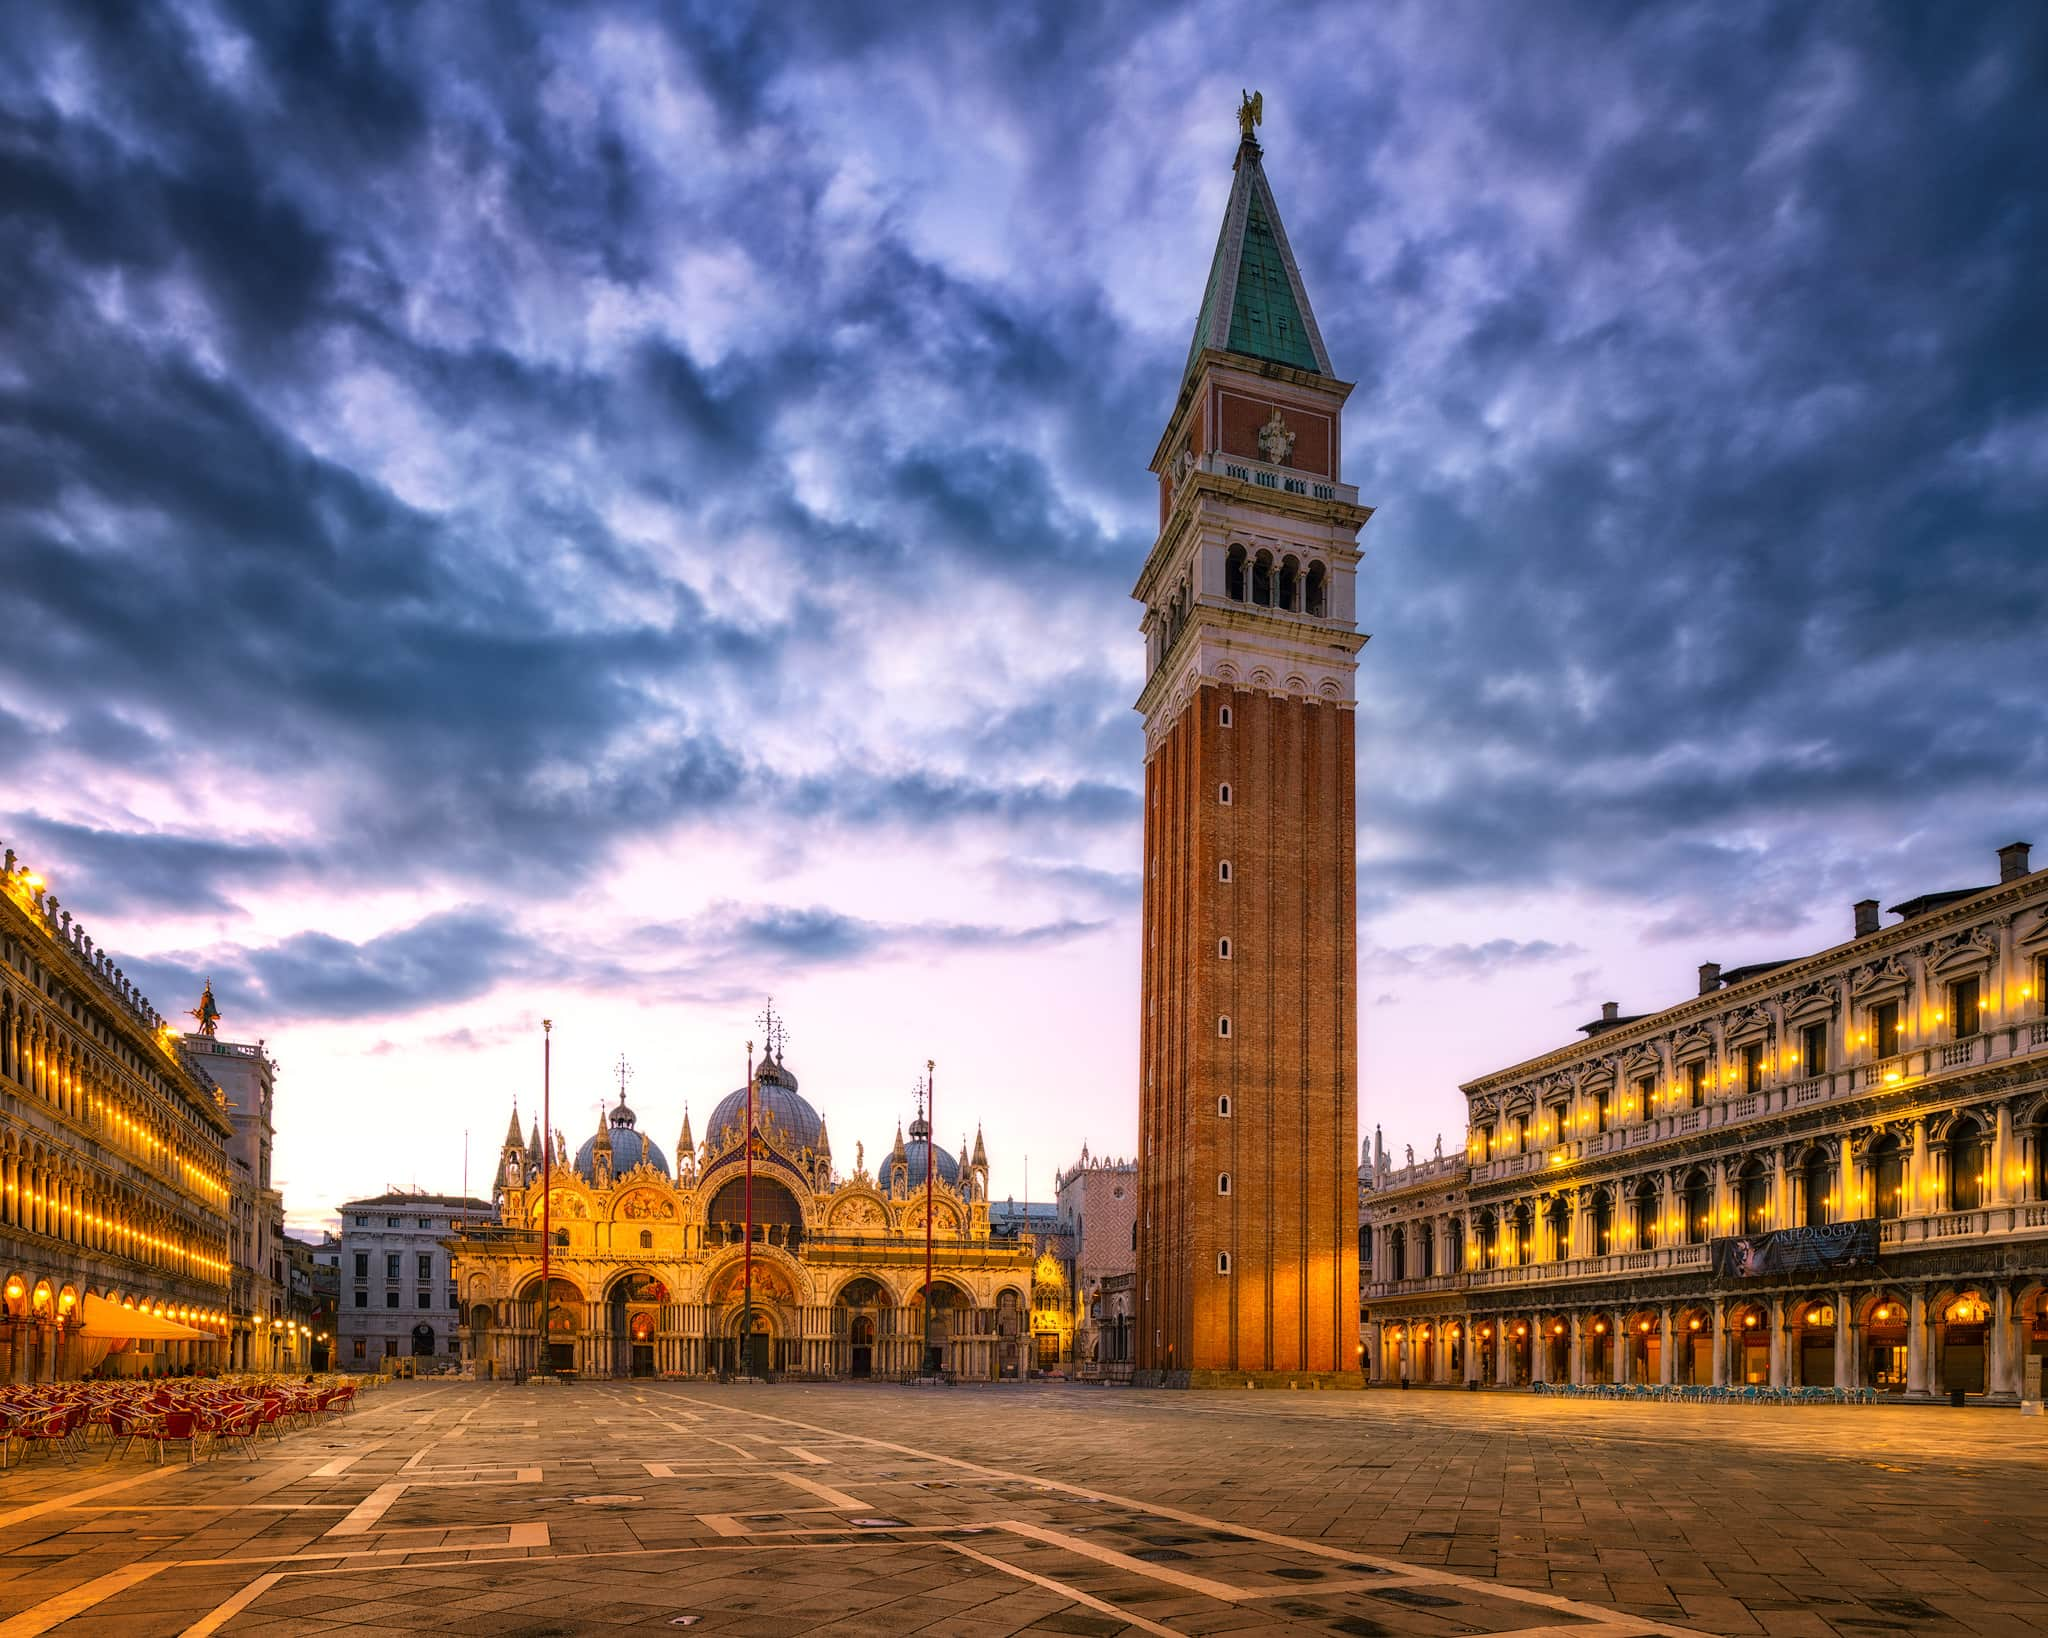 Venice St Mark's Square with St Mark's Basilica and St Mark's Campanile – summer in Italy